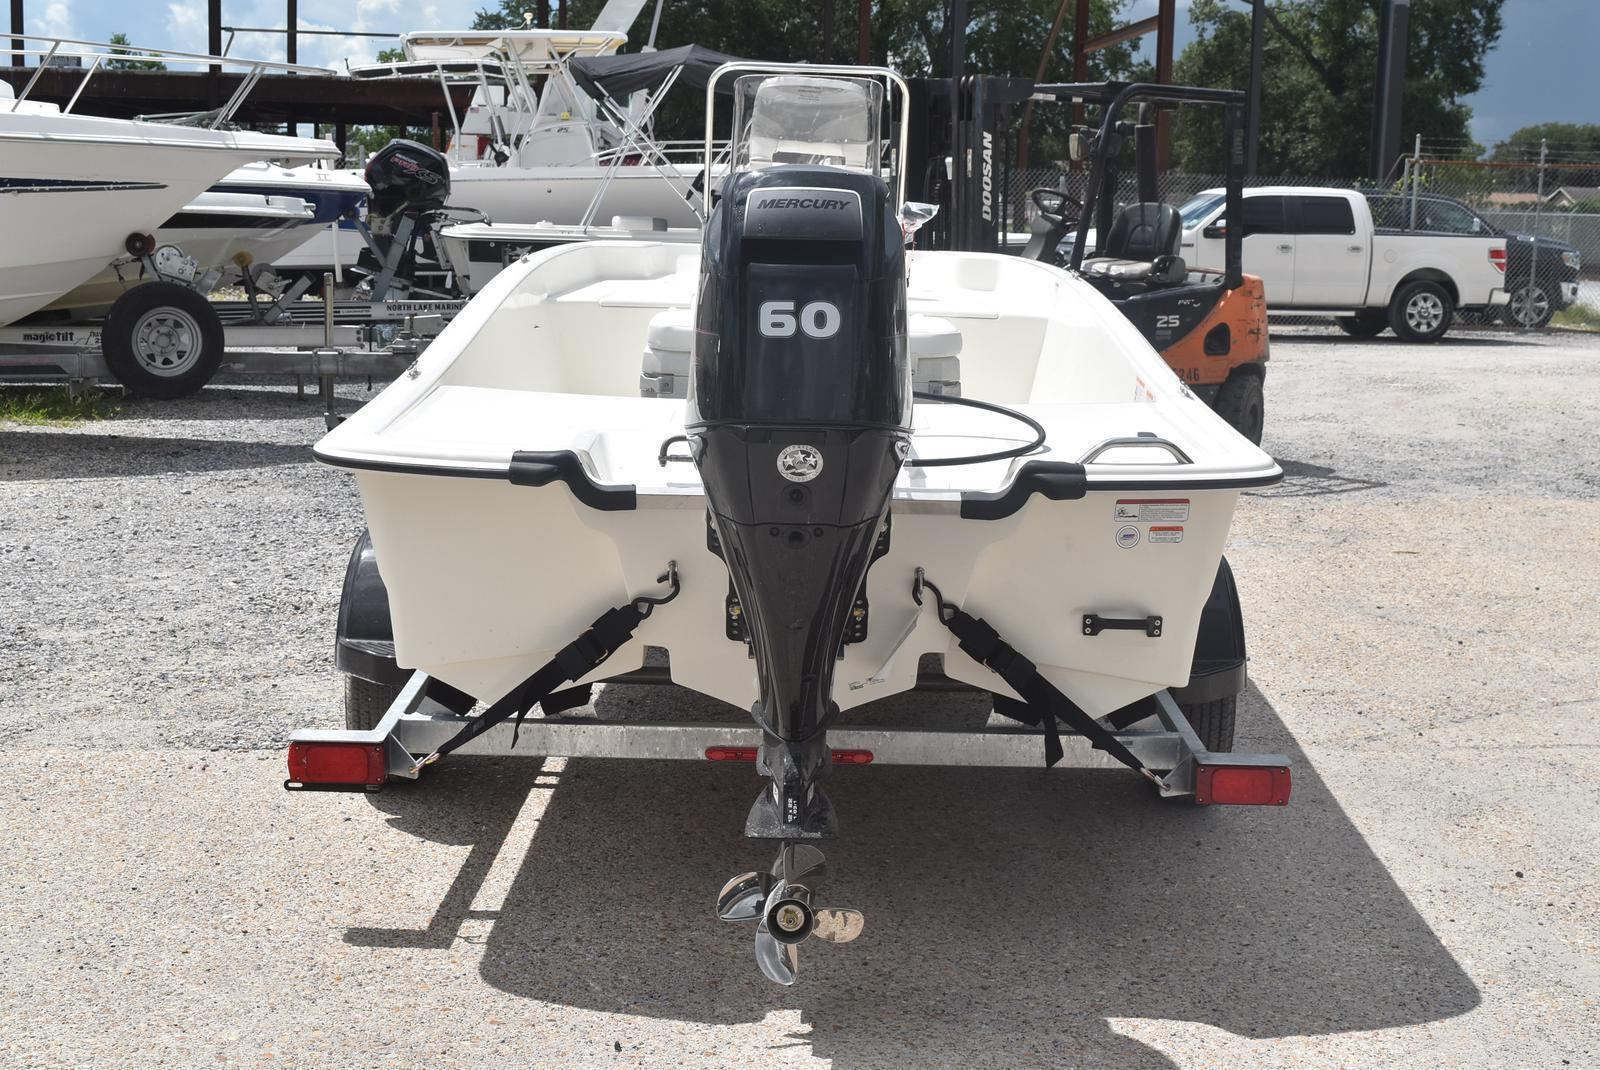 2020 Mako boat for sale, model of the boat is Pro Skiff 17, 75 ELPT & Image # 559 of 702